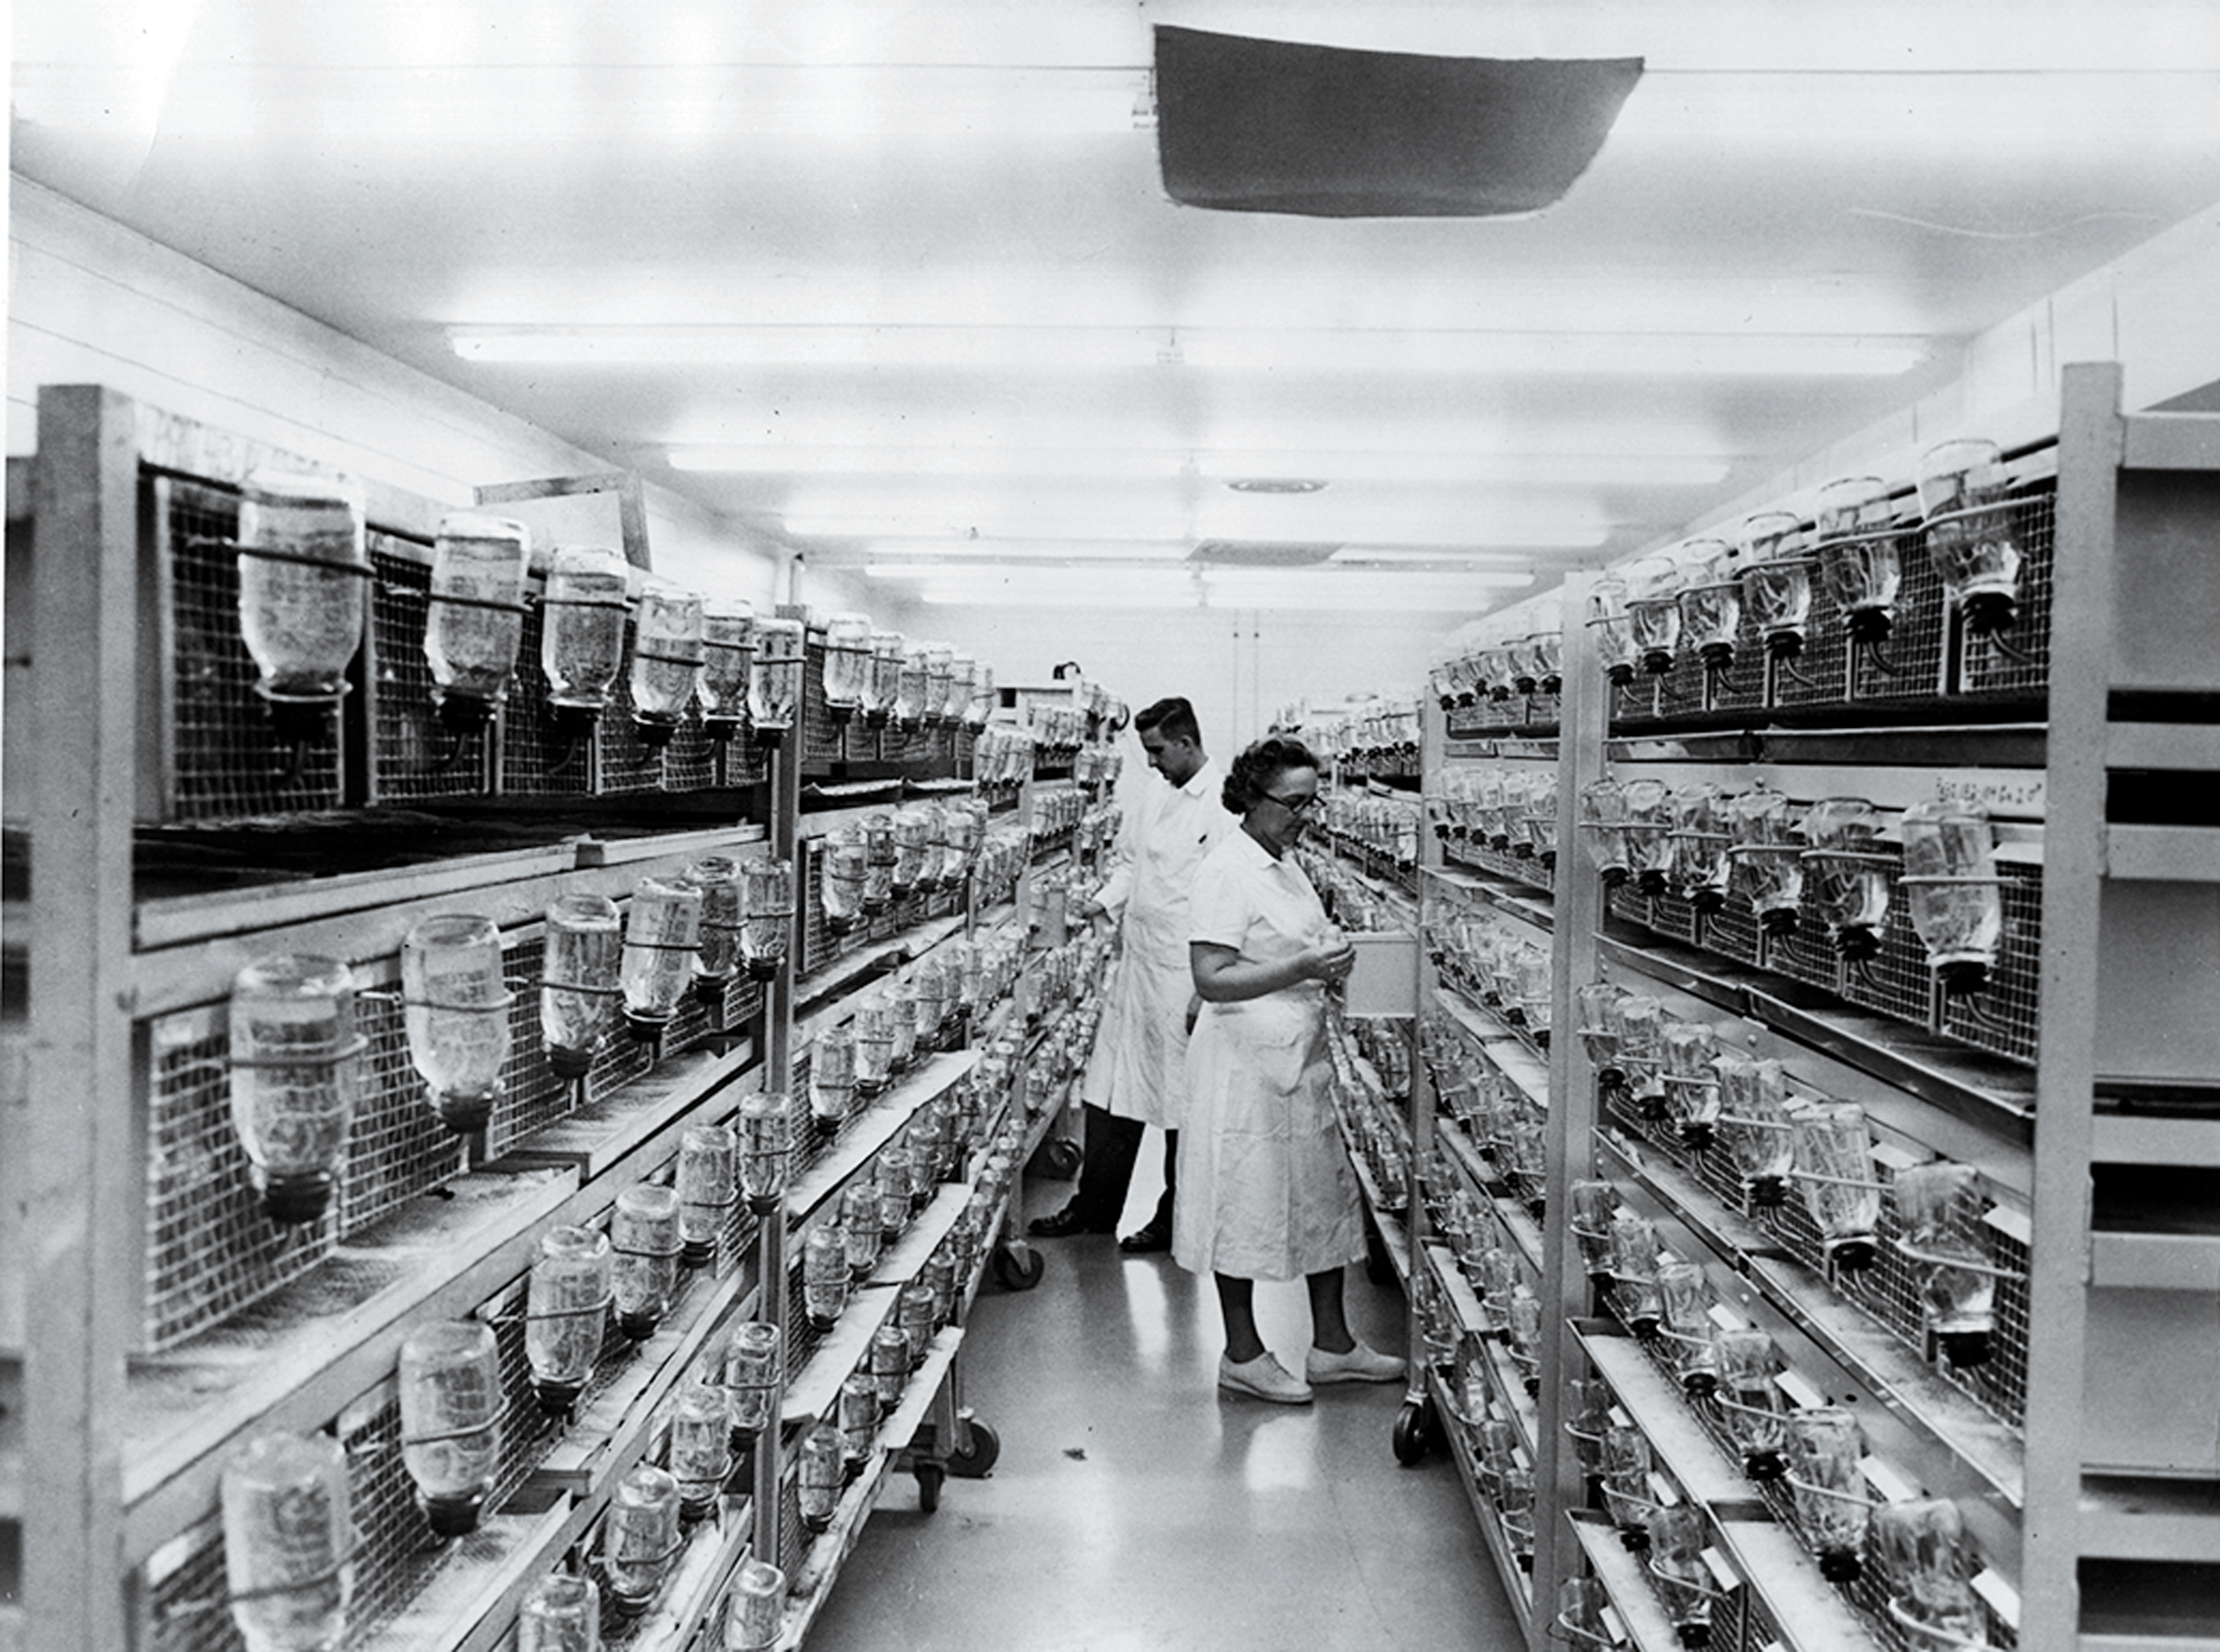 1970s Scientists experiment with using viruses to introduce new genes into animals.